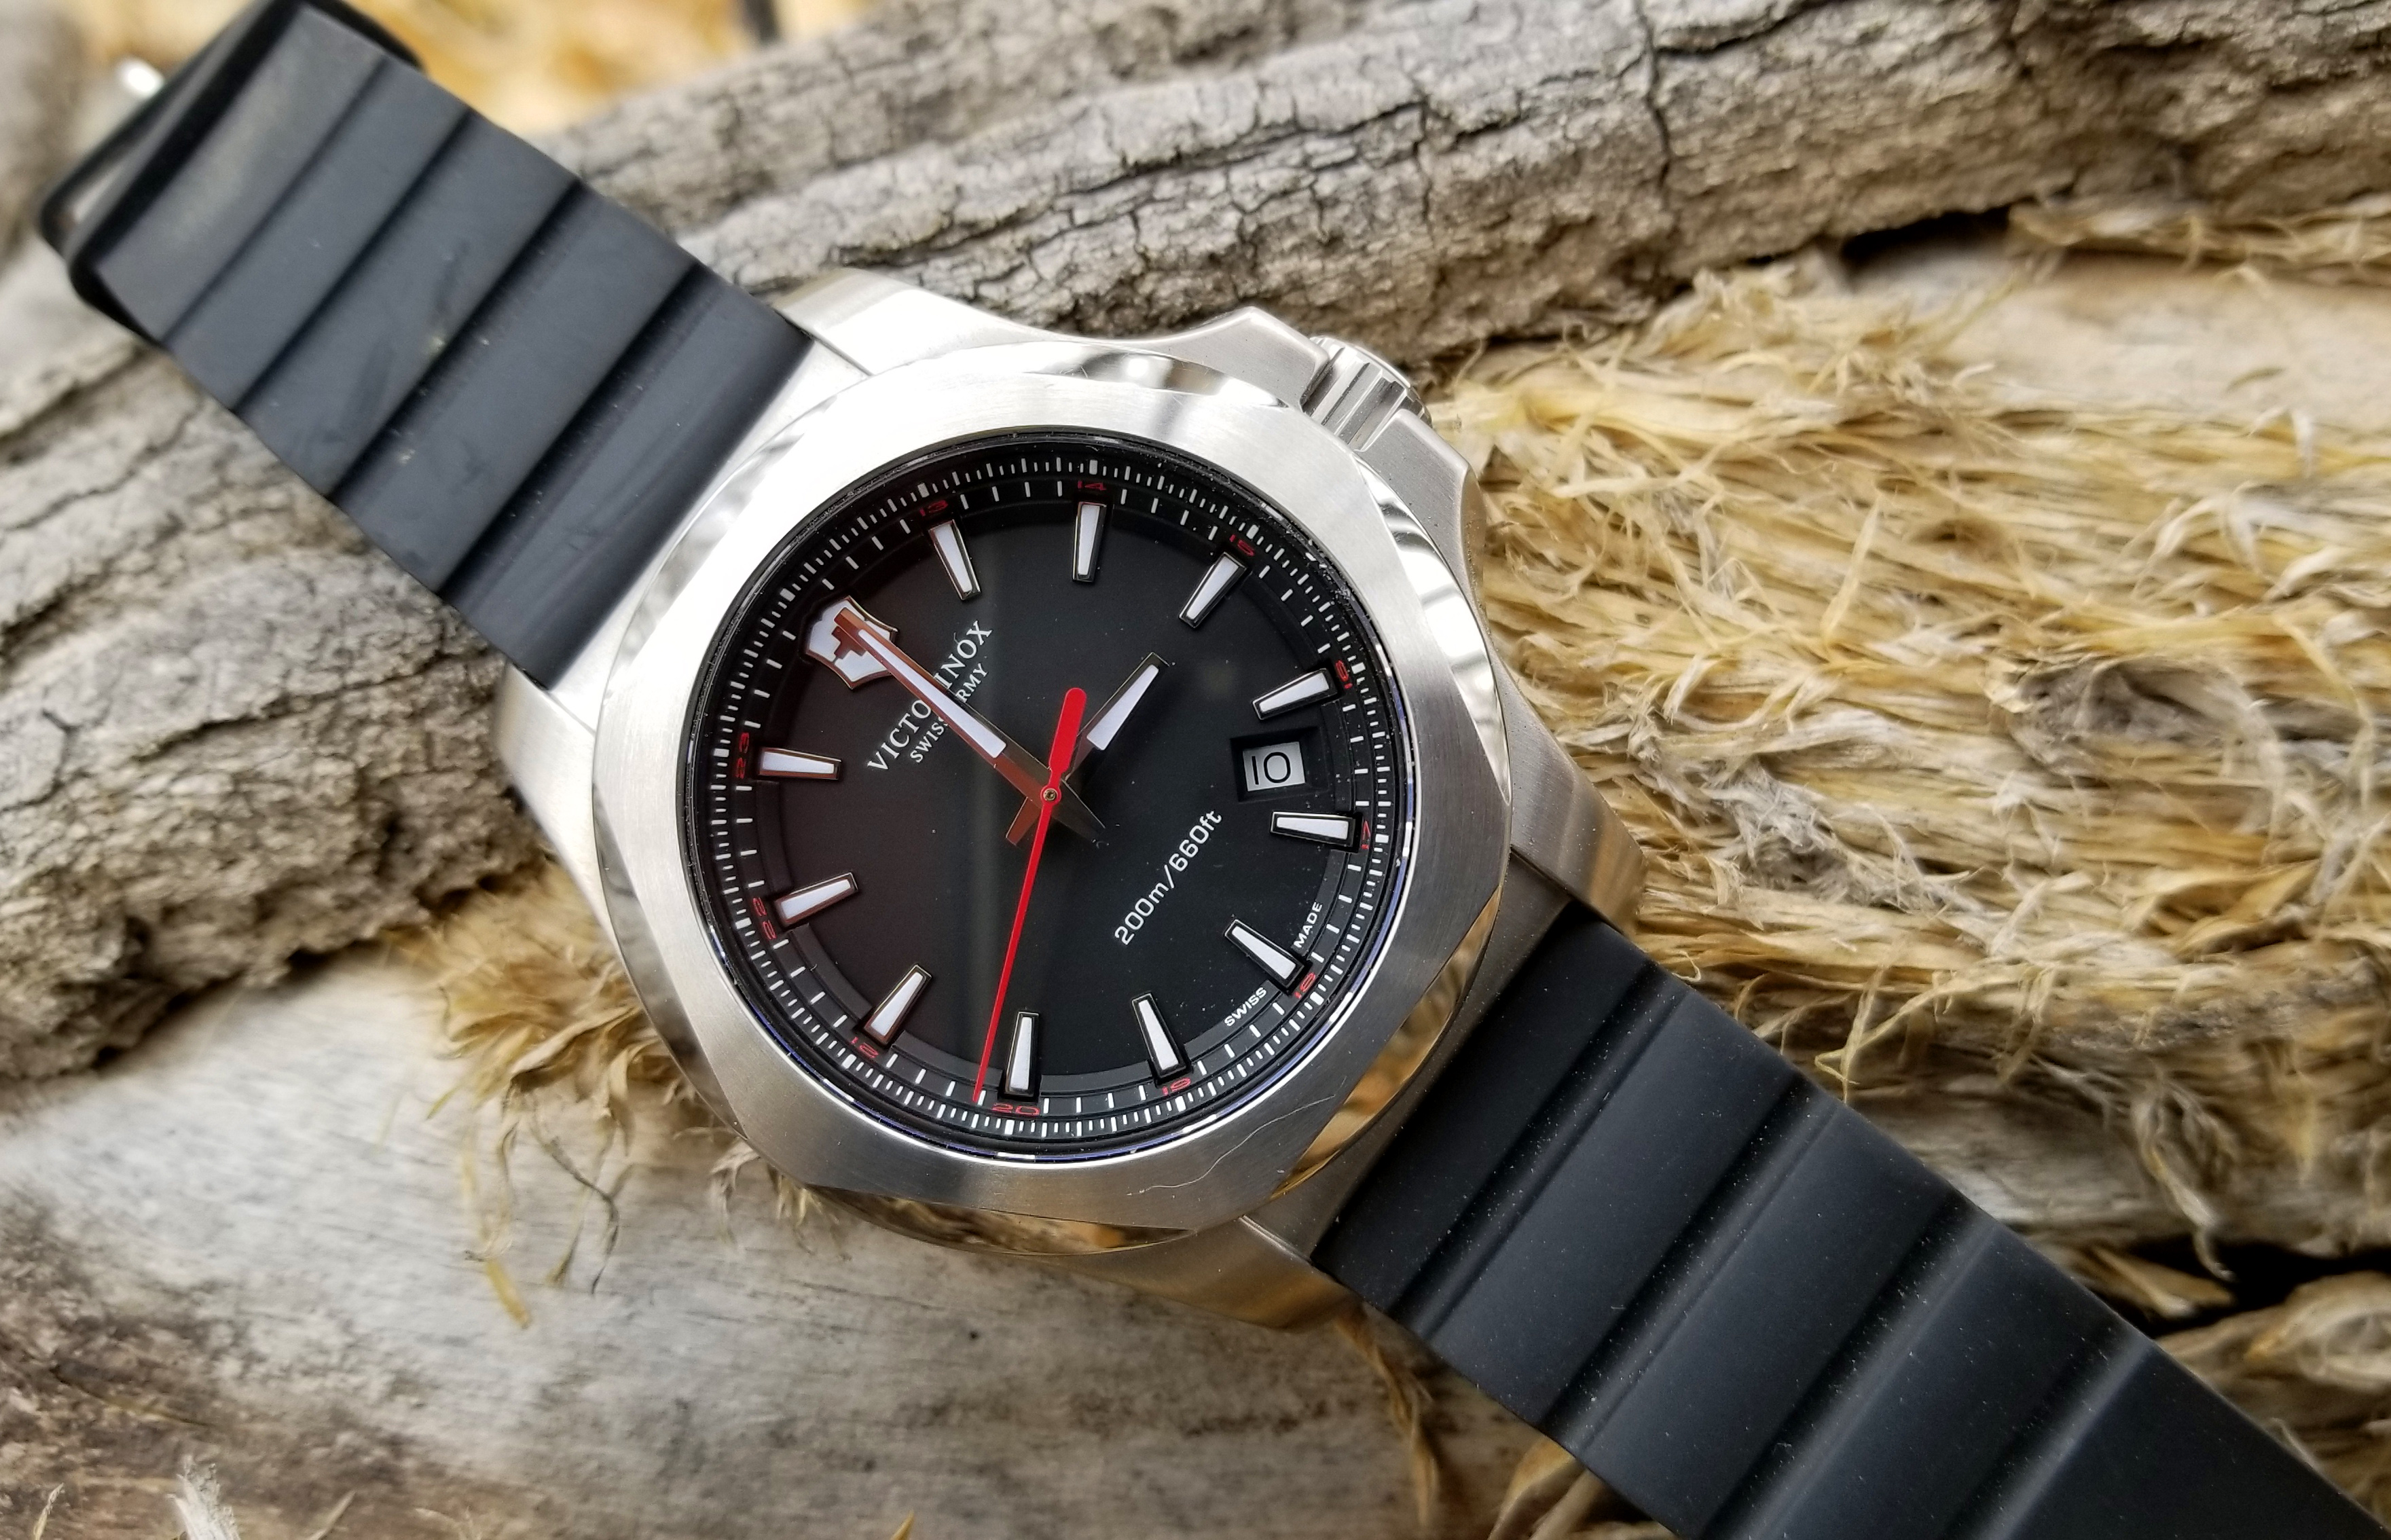 Victorinox inox watch review daily wear adventure tested gearjunkie for Adventure watches